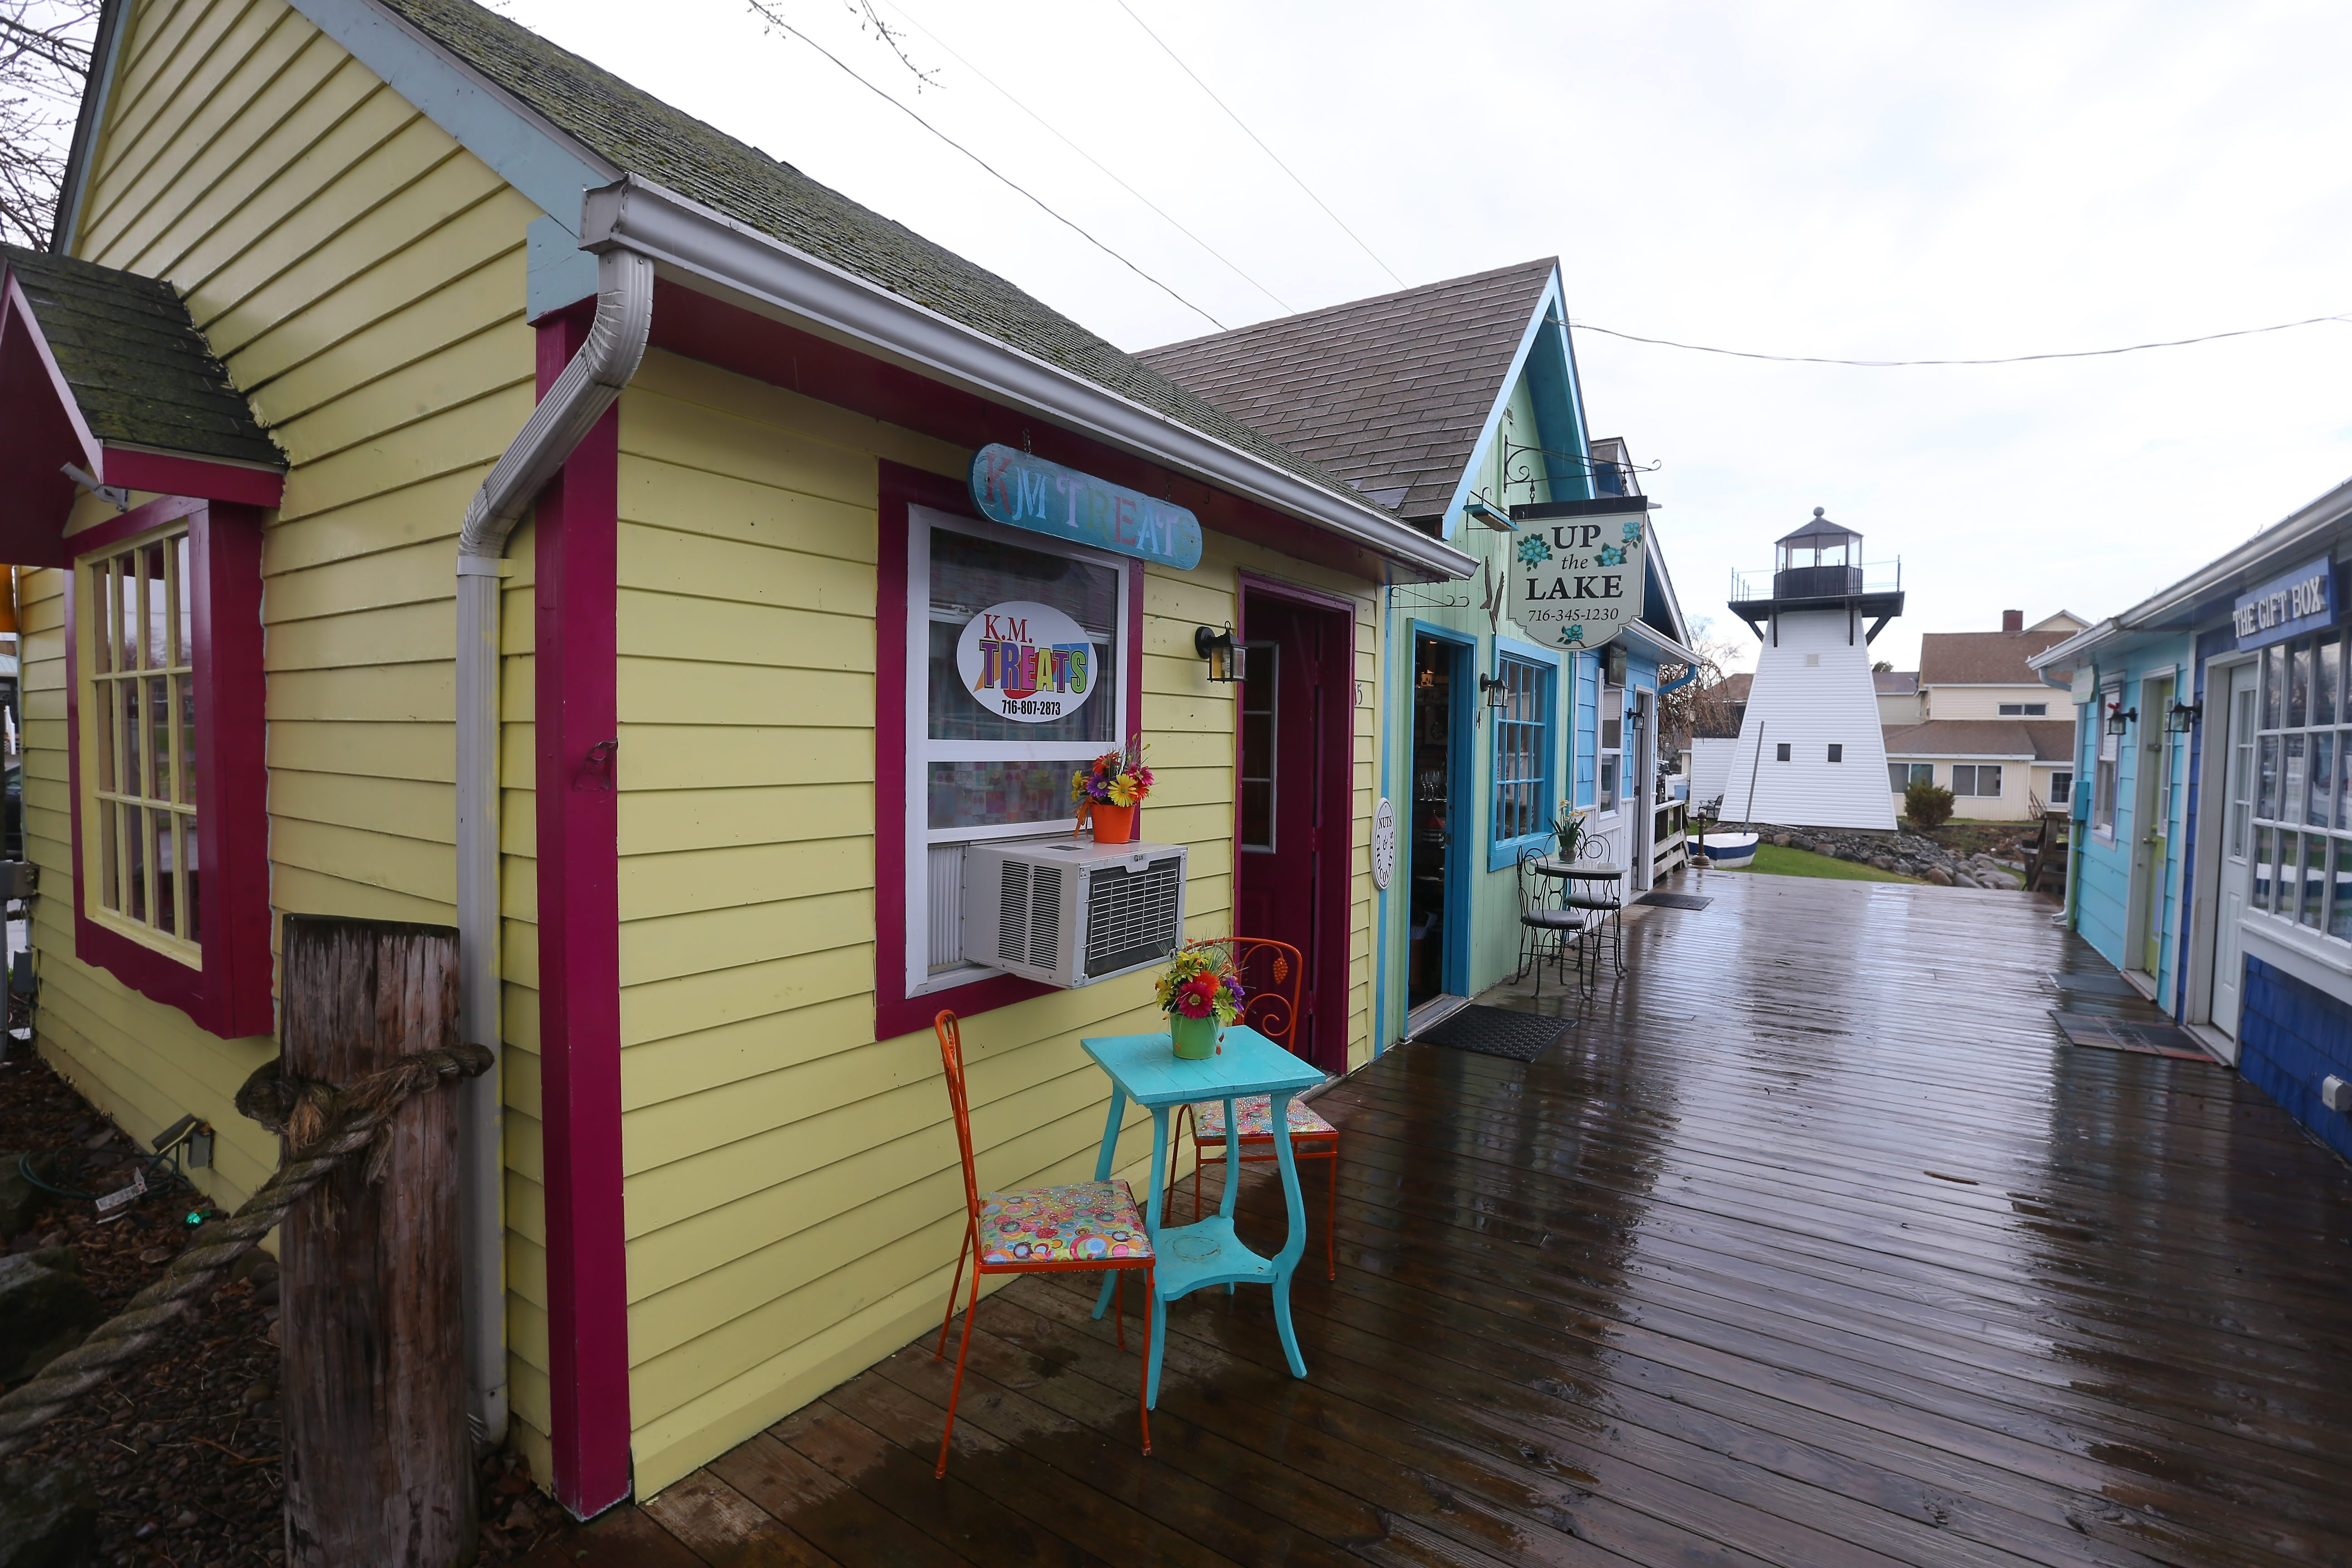 The Lakeview Village Shoppes in Olcott were opened nearly 25 years ago as a way to boost tourism during the summer months. Art, jewelry, jams and jellies, souvenirs, memorabilia, antiques, clothes and food are sold at the shops.